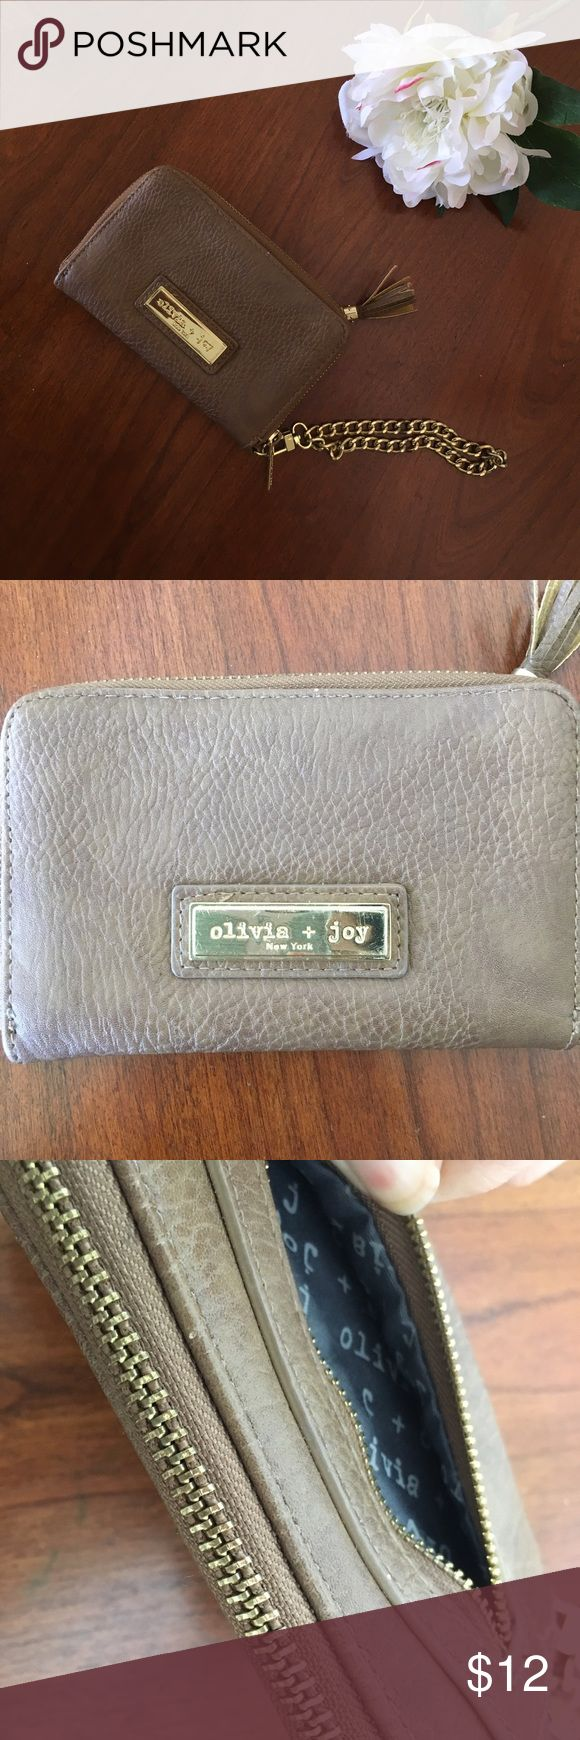 Olivia + Joy zipper wallet wristlet brown gold Adorable Olivia + Joy wallet convertible to a wristlet. 5 card slots, two smaller zipper pouches, a large slot on the side sand full zip around. I liked it because my phone fit inside the main pocket. Approx measurements in photos. Gold tone wrist strap has some minor wear on the finish. Name plate has minor scratching. Smoke free dog friendly home. Olivia + Joy Bags Wallets